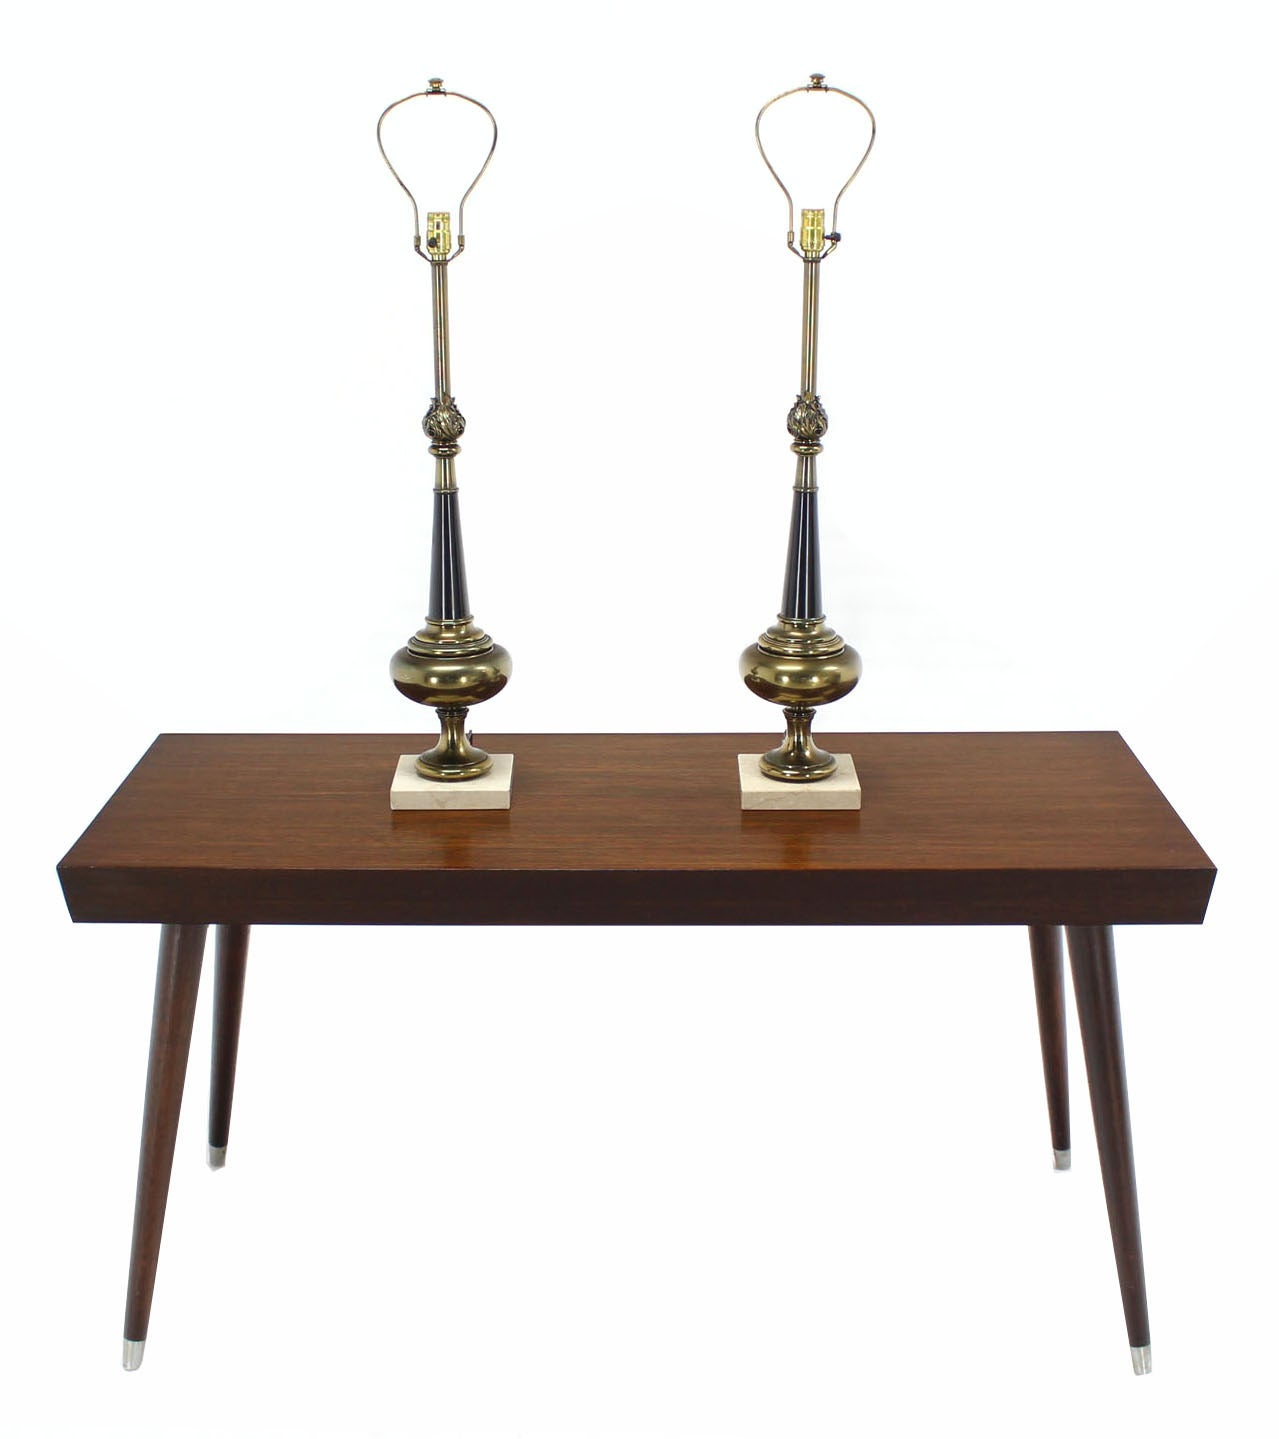 pair of stiffel modern table lamps on marble bases for sale at 1stdibs. Black Bedroom Furniture Sets. Home Design Ideas